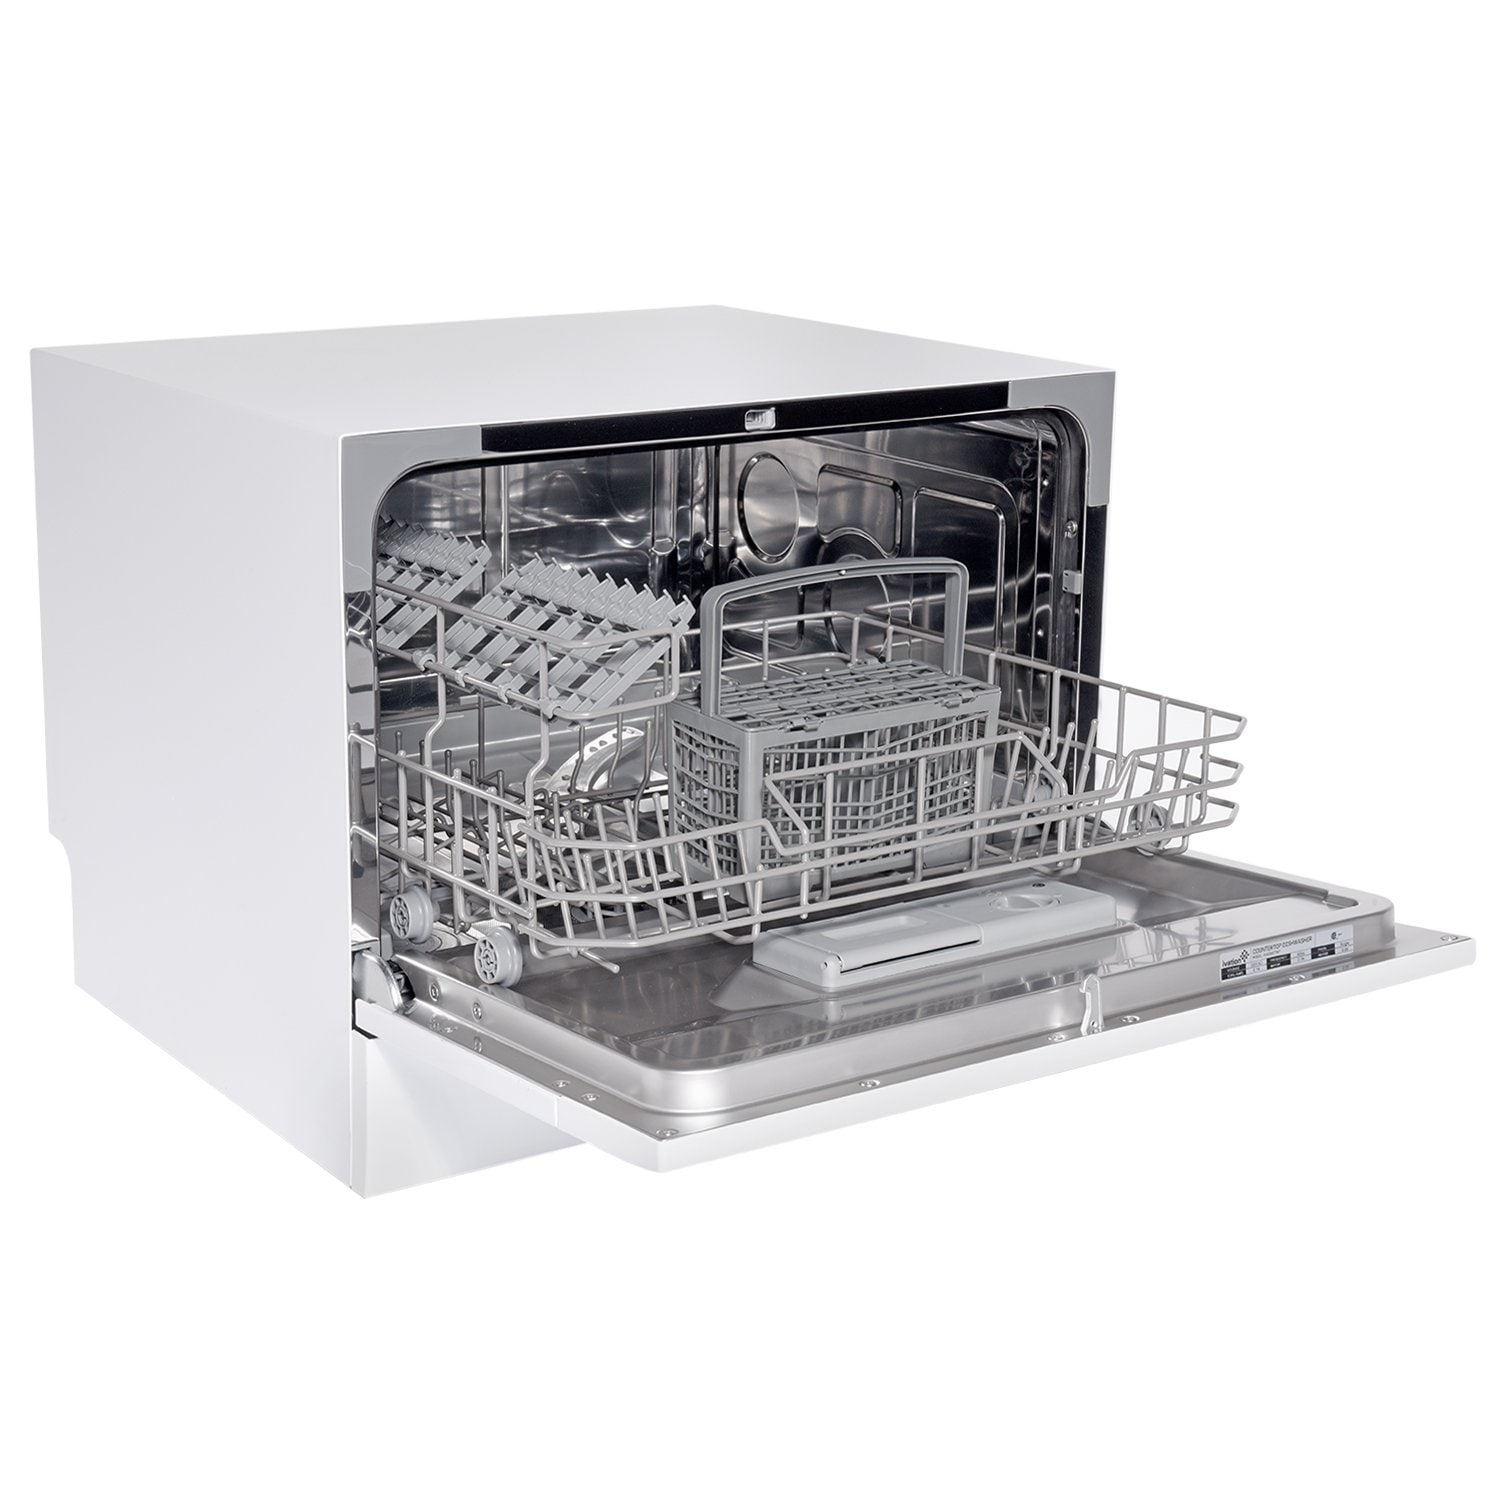 Picture of the Ivation Countertop Dishwasher from Overstock.com